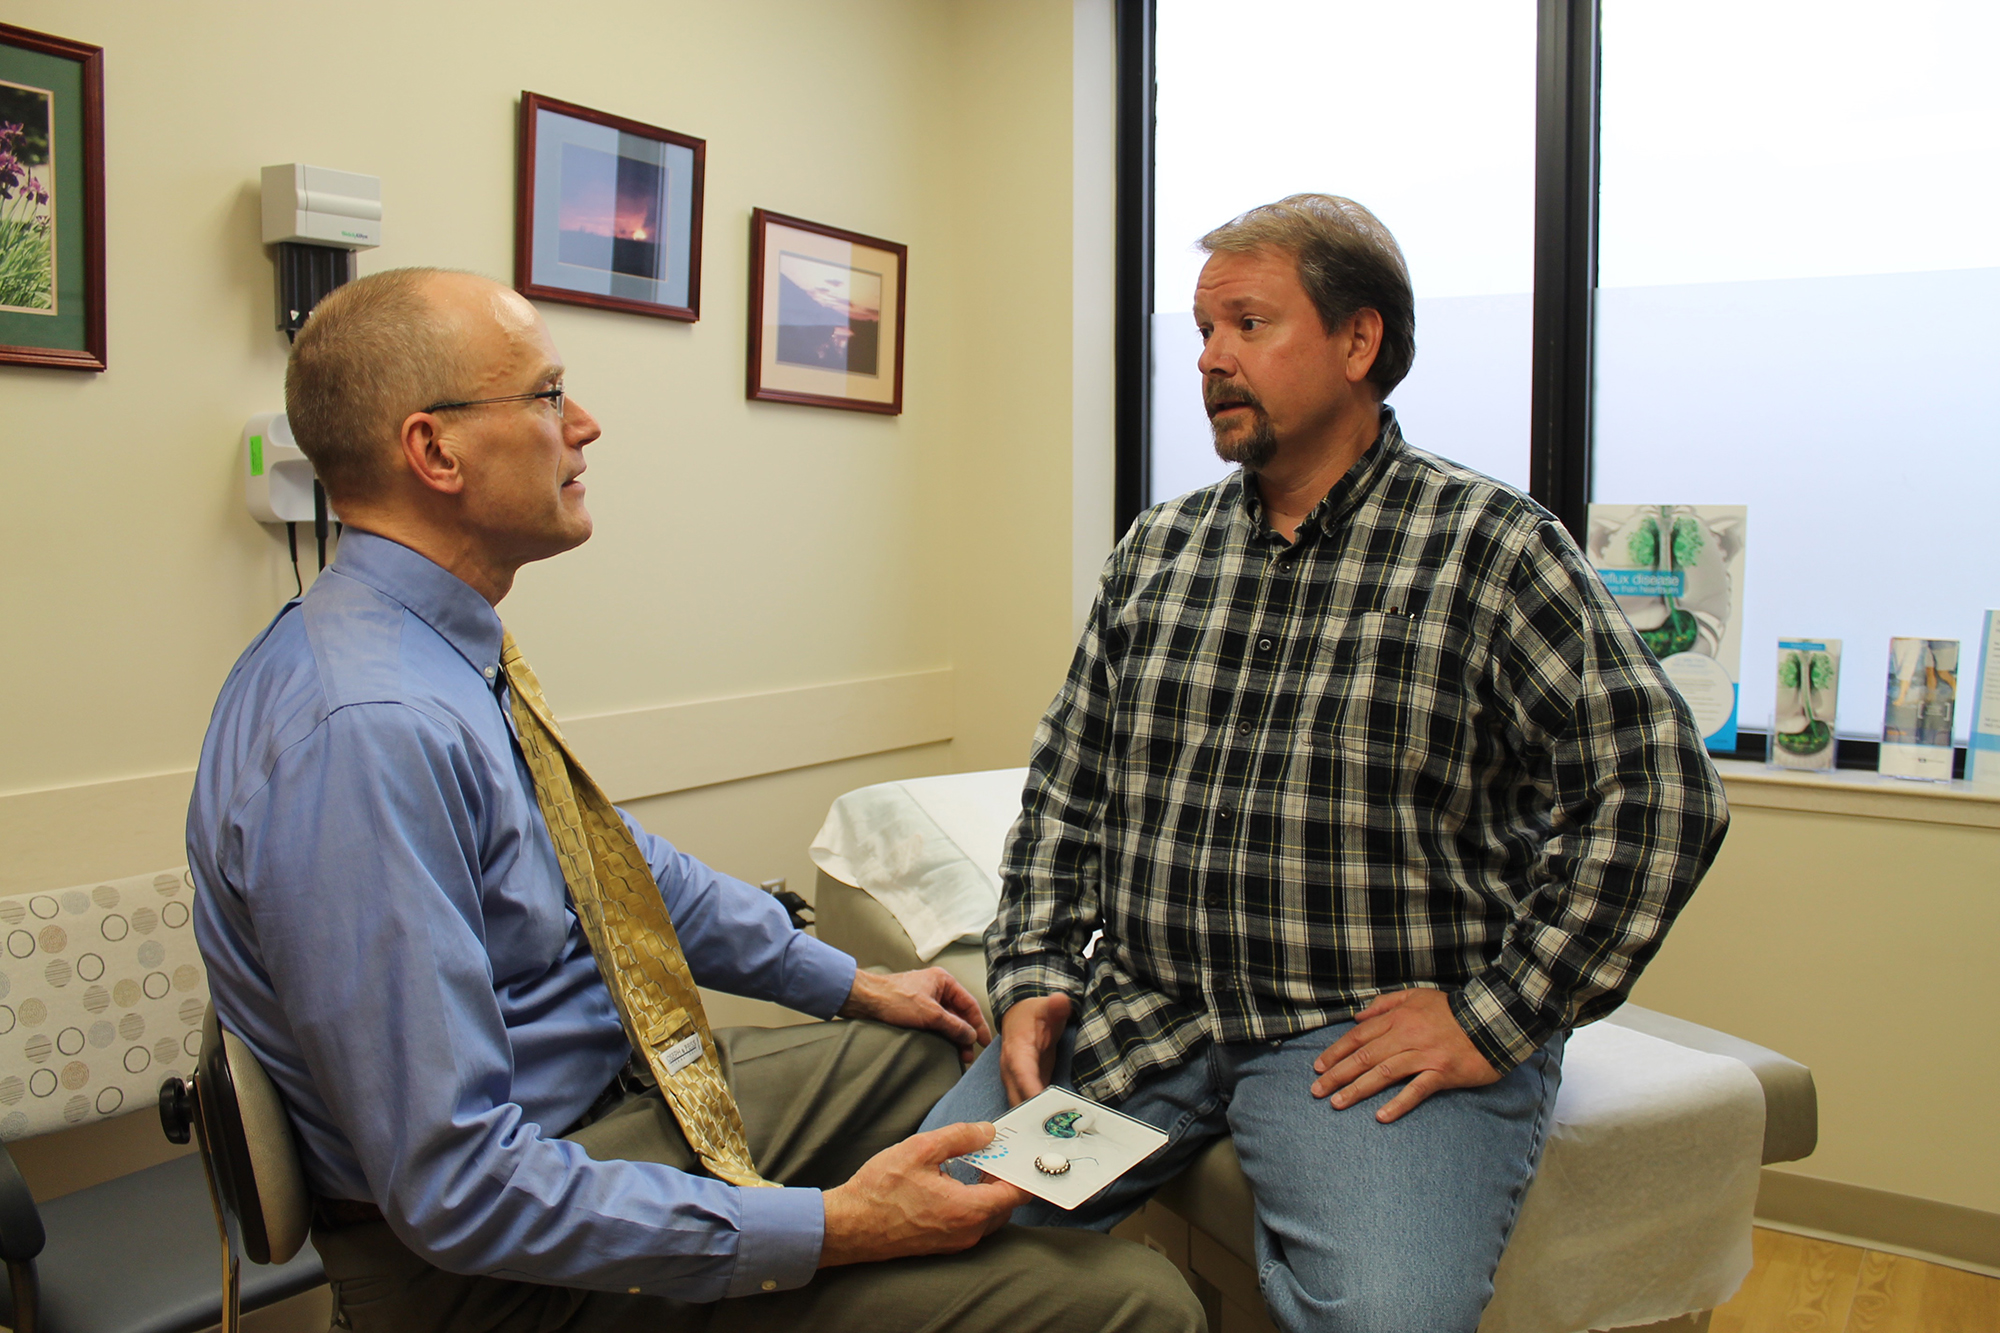 Dr. Kloss consulting with patient